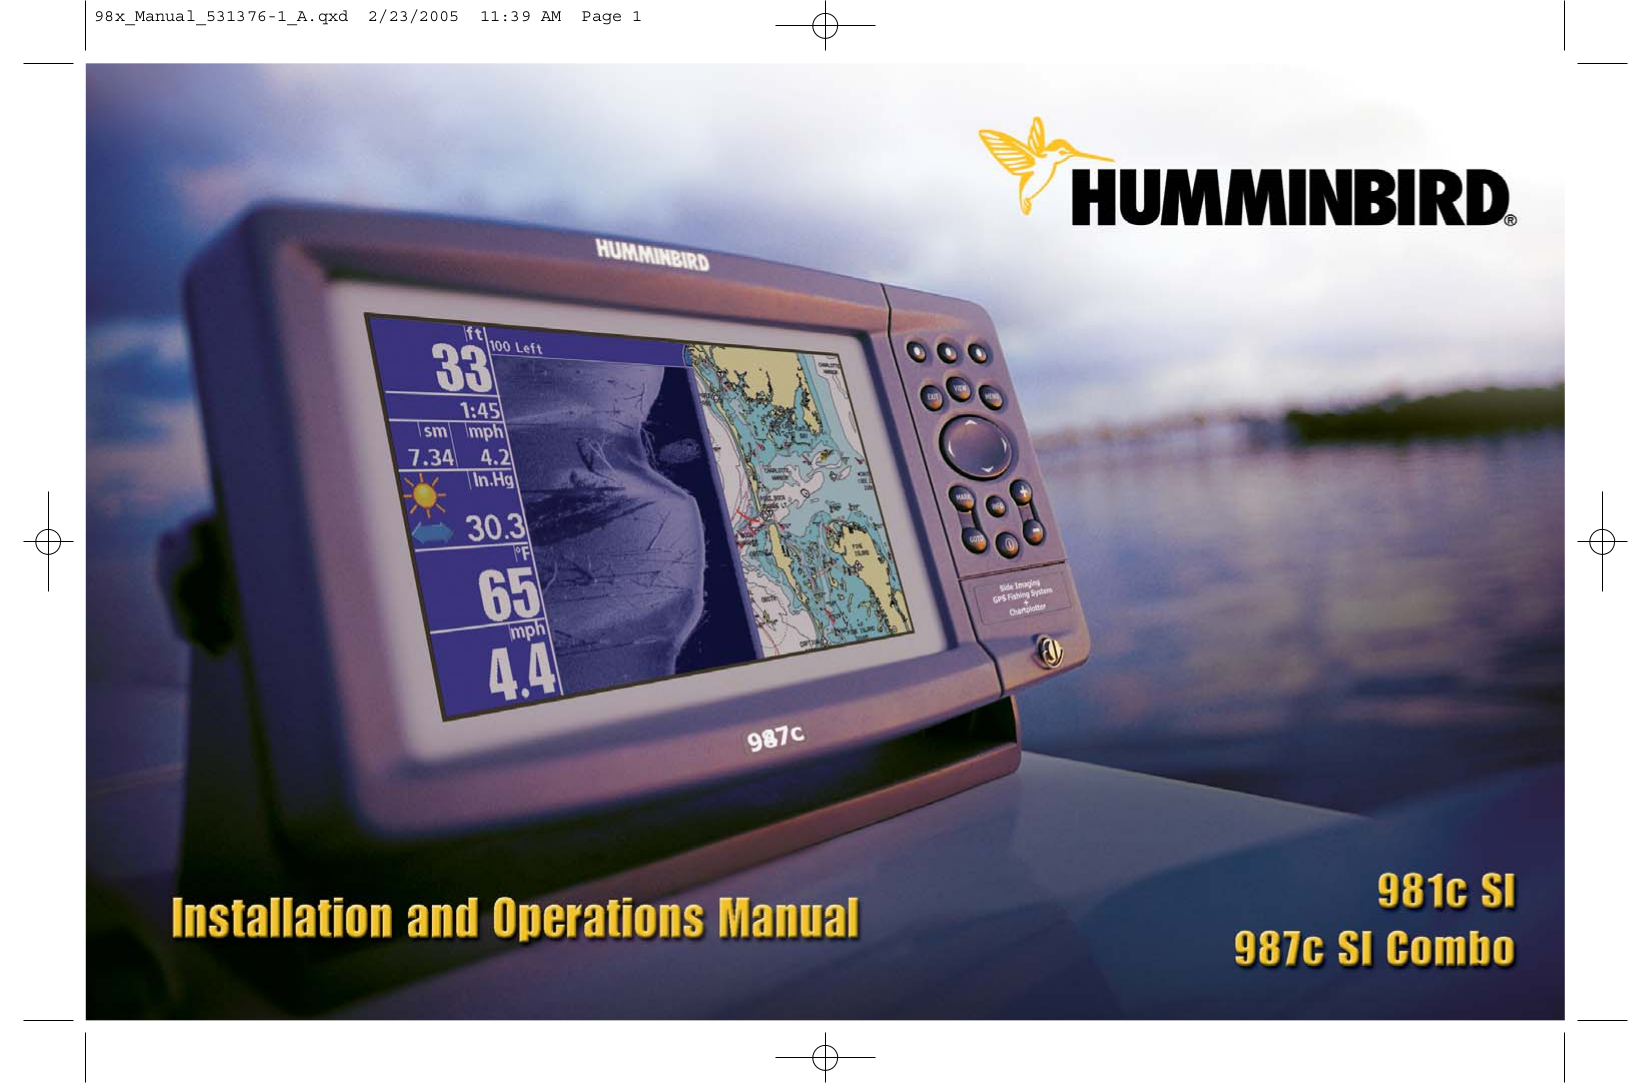 pdf for Humminbird GPS 987C SI manual